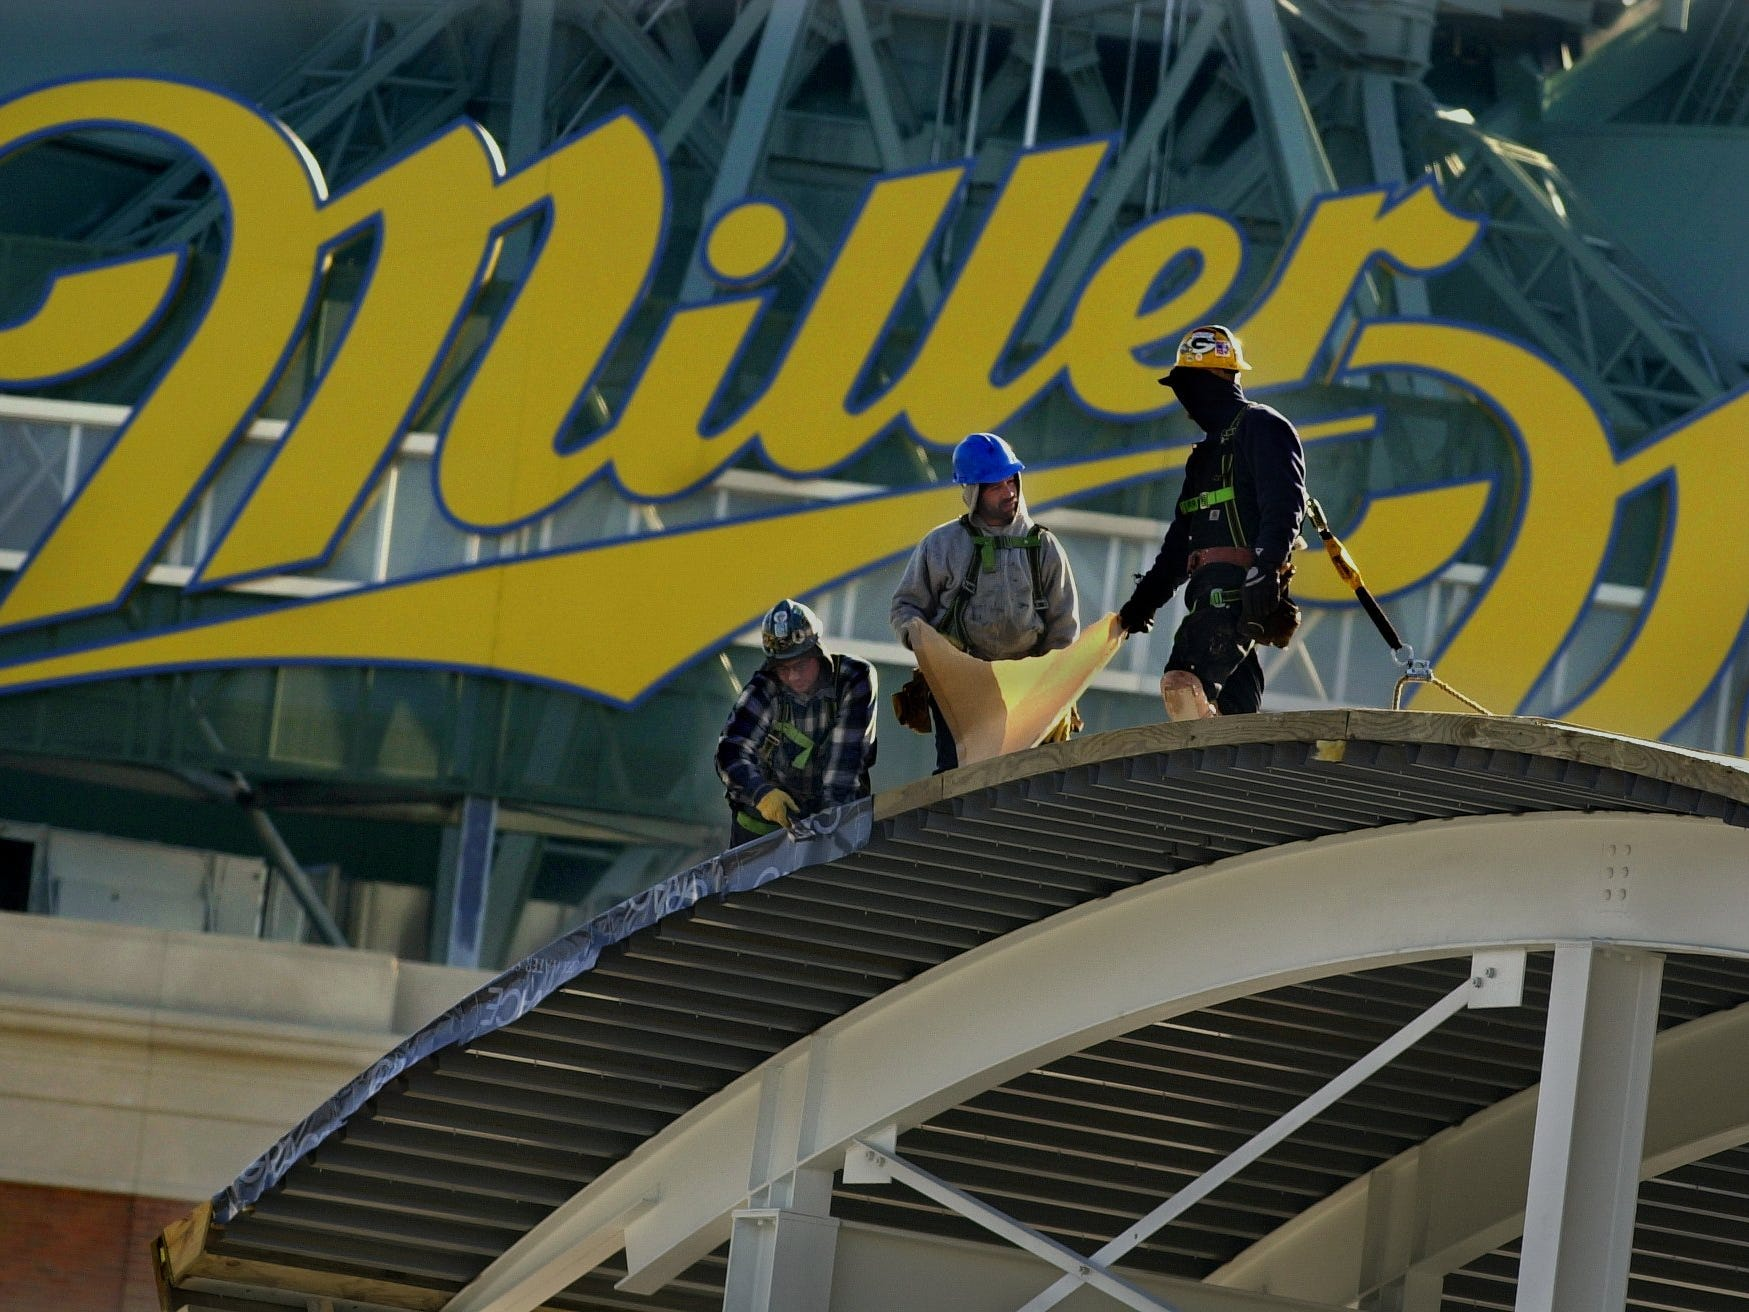 With Miller Park overshadowing their work, construction workers from Hunzinger Construction apply the roofing material to the $3.1 million facility at Miller Park known as Helfaer Field.